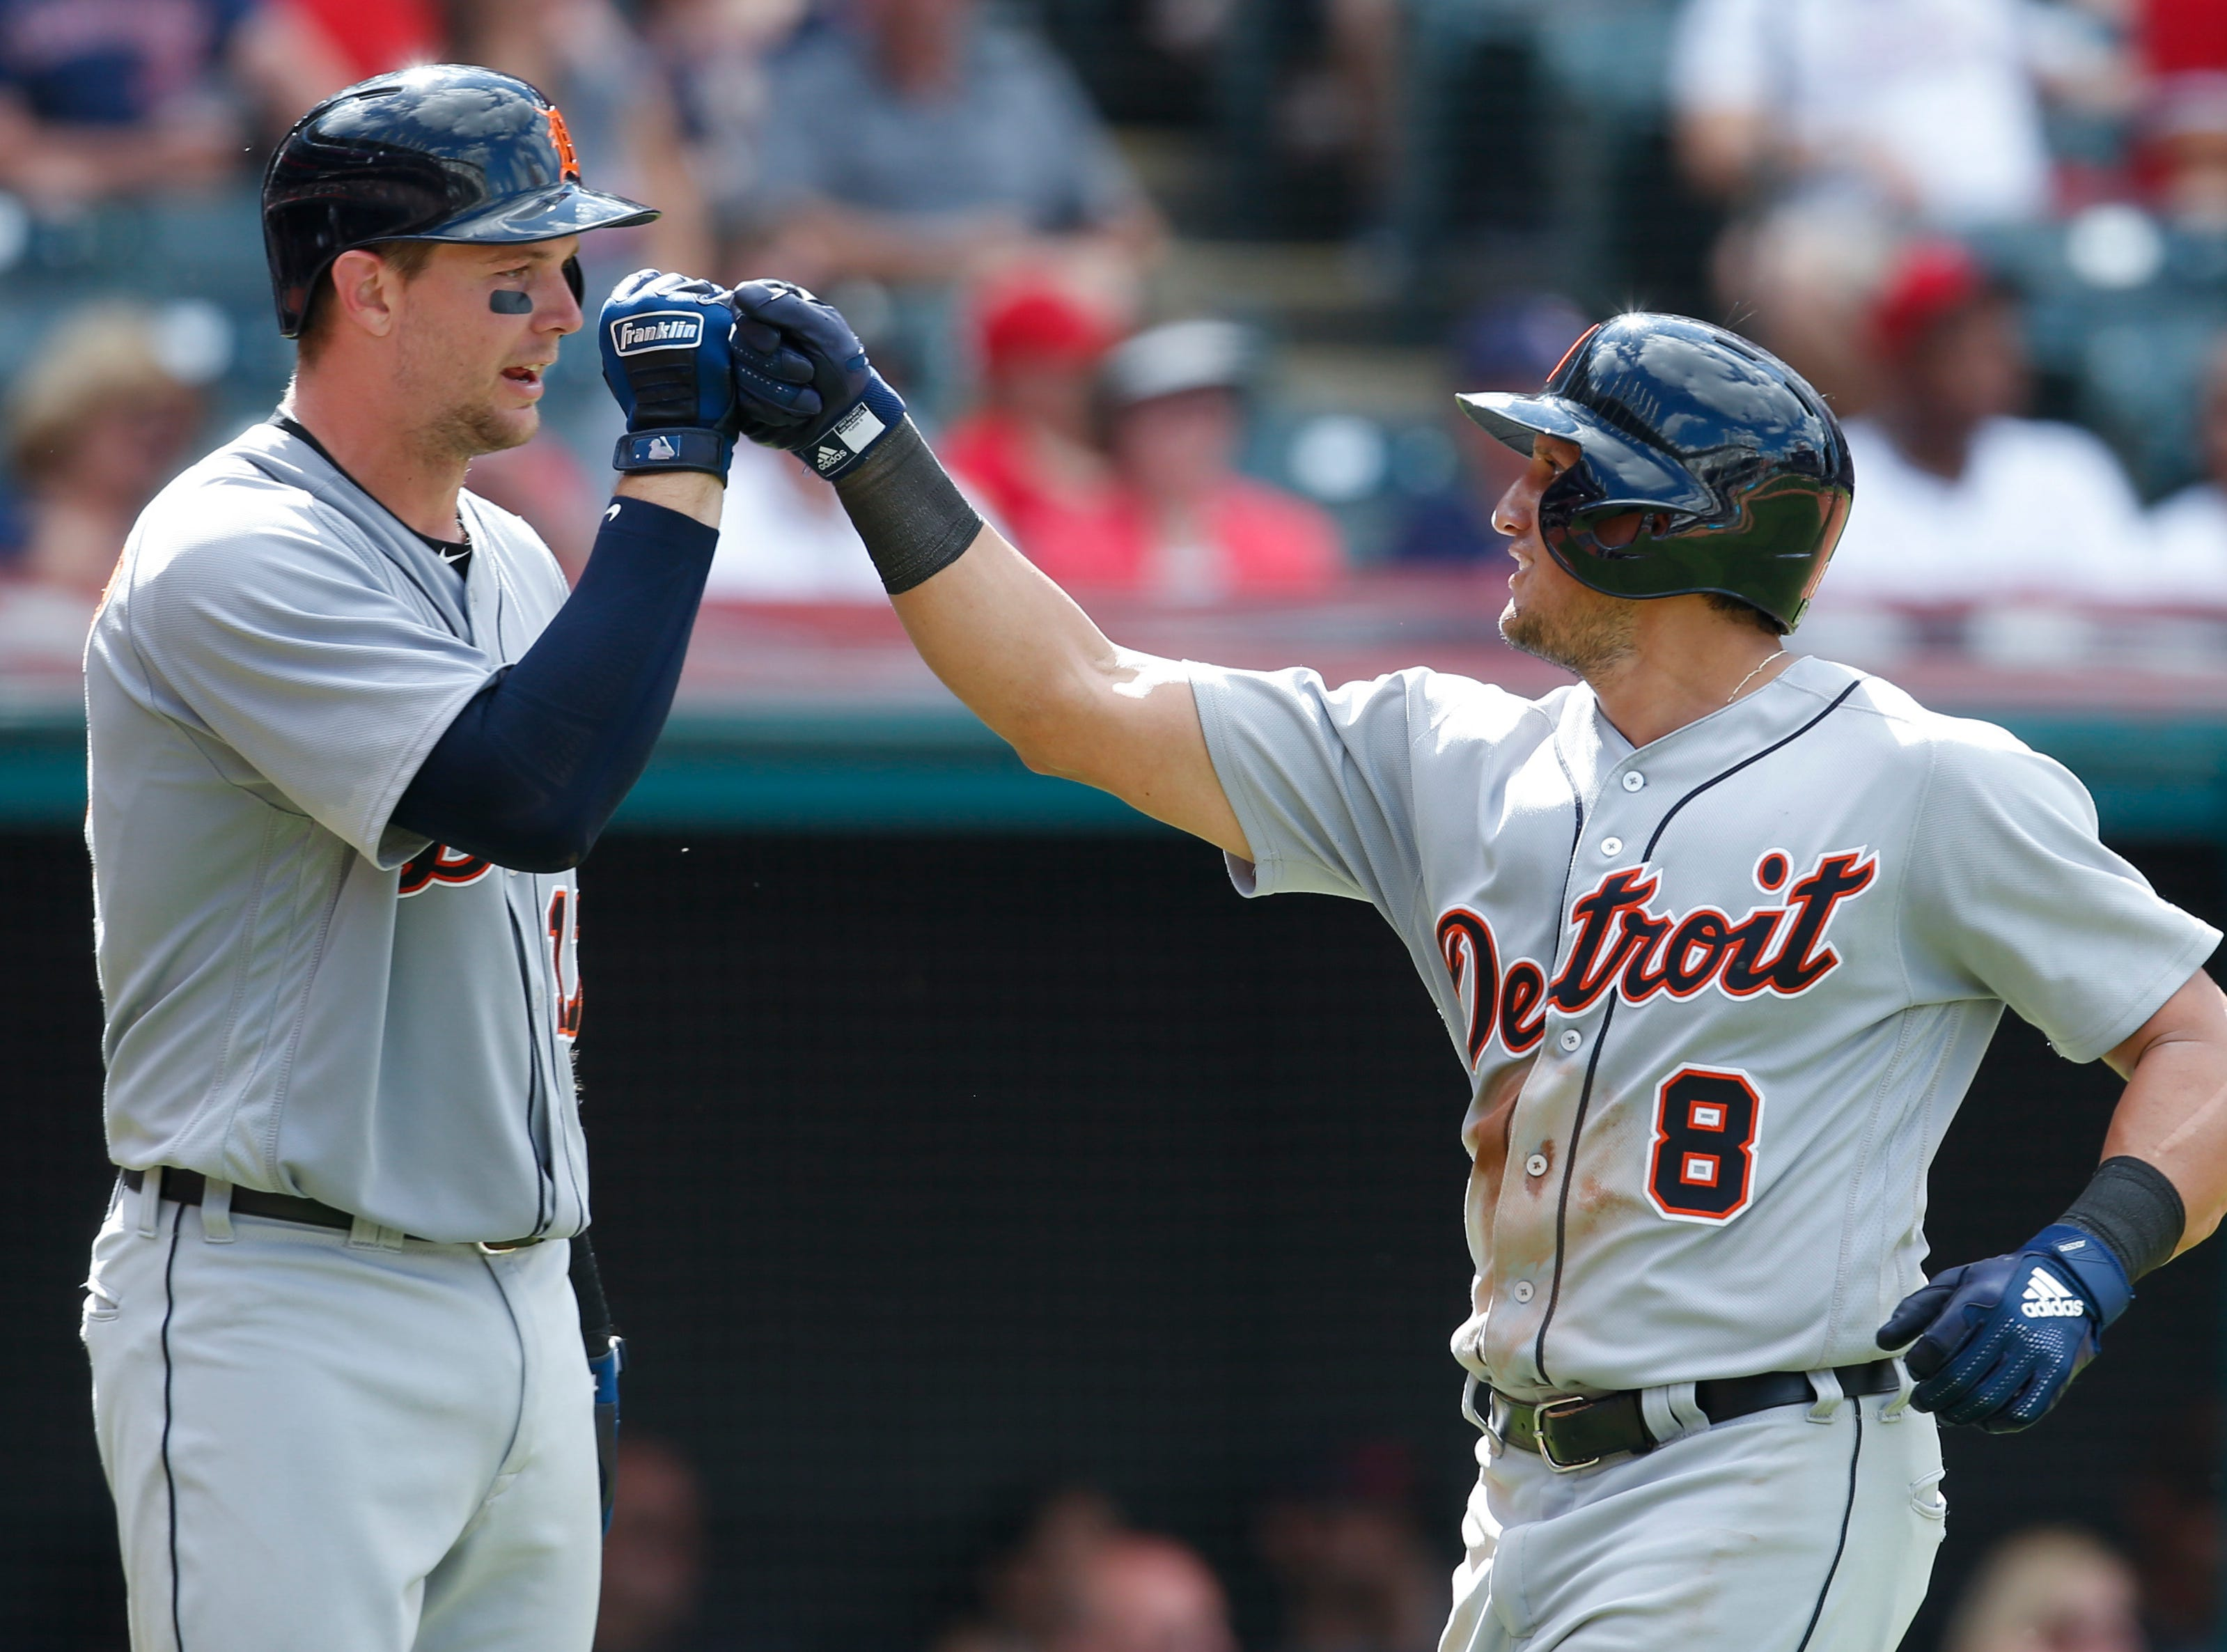 Tigers right  fielder Mikie Mahtook, right, celebrates with Grayson Greiner after hitting a solo home run during the eighth inning of the Tigers' 6-4 win on Sunday, Sept. 16, 2018, in Cleveland.